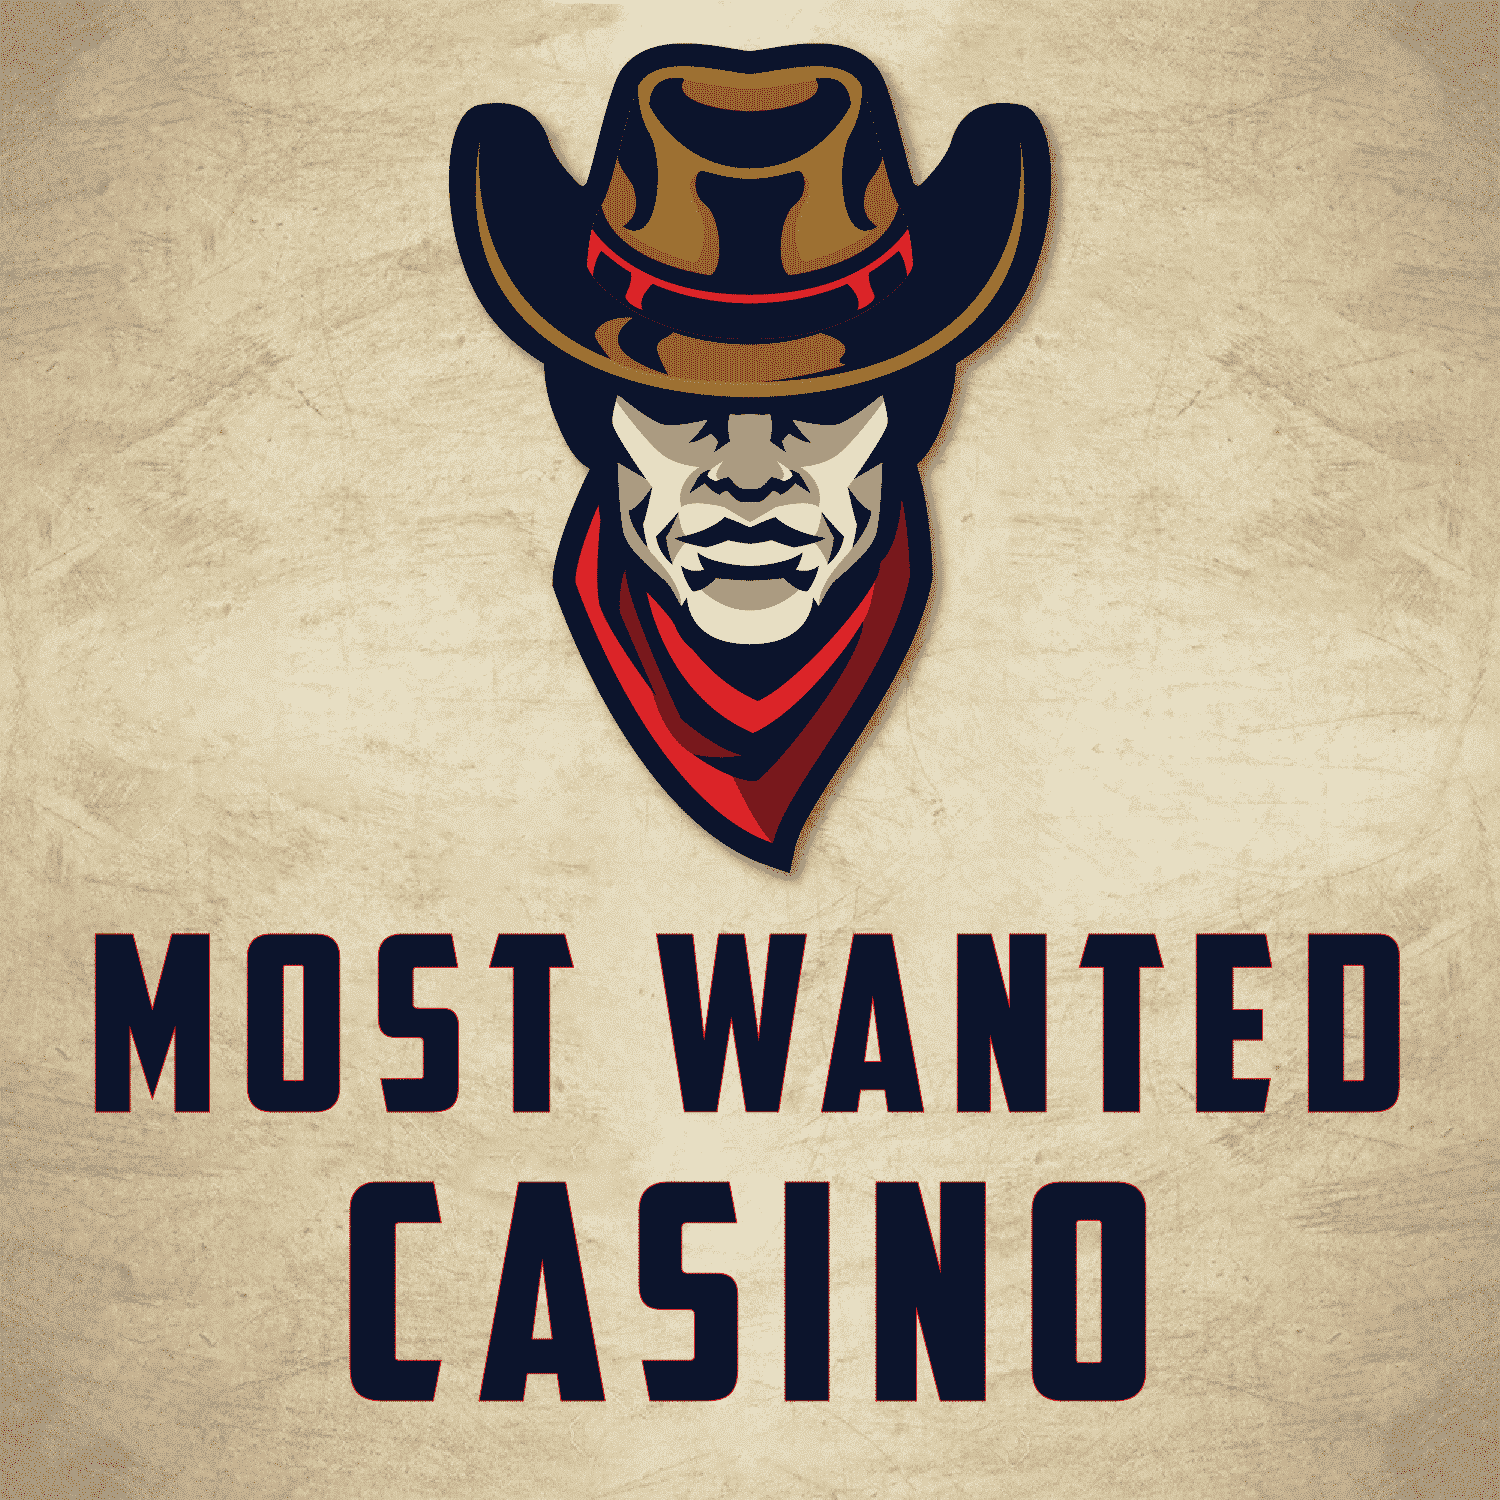 Most Wanted Casino logo